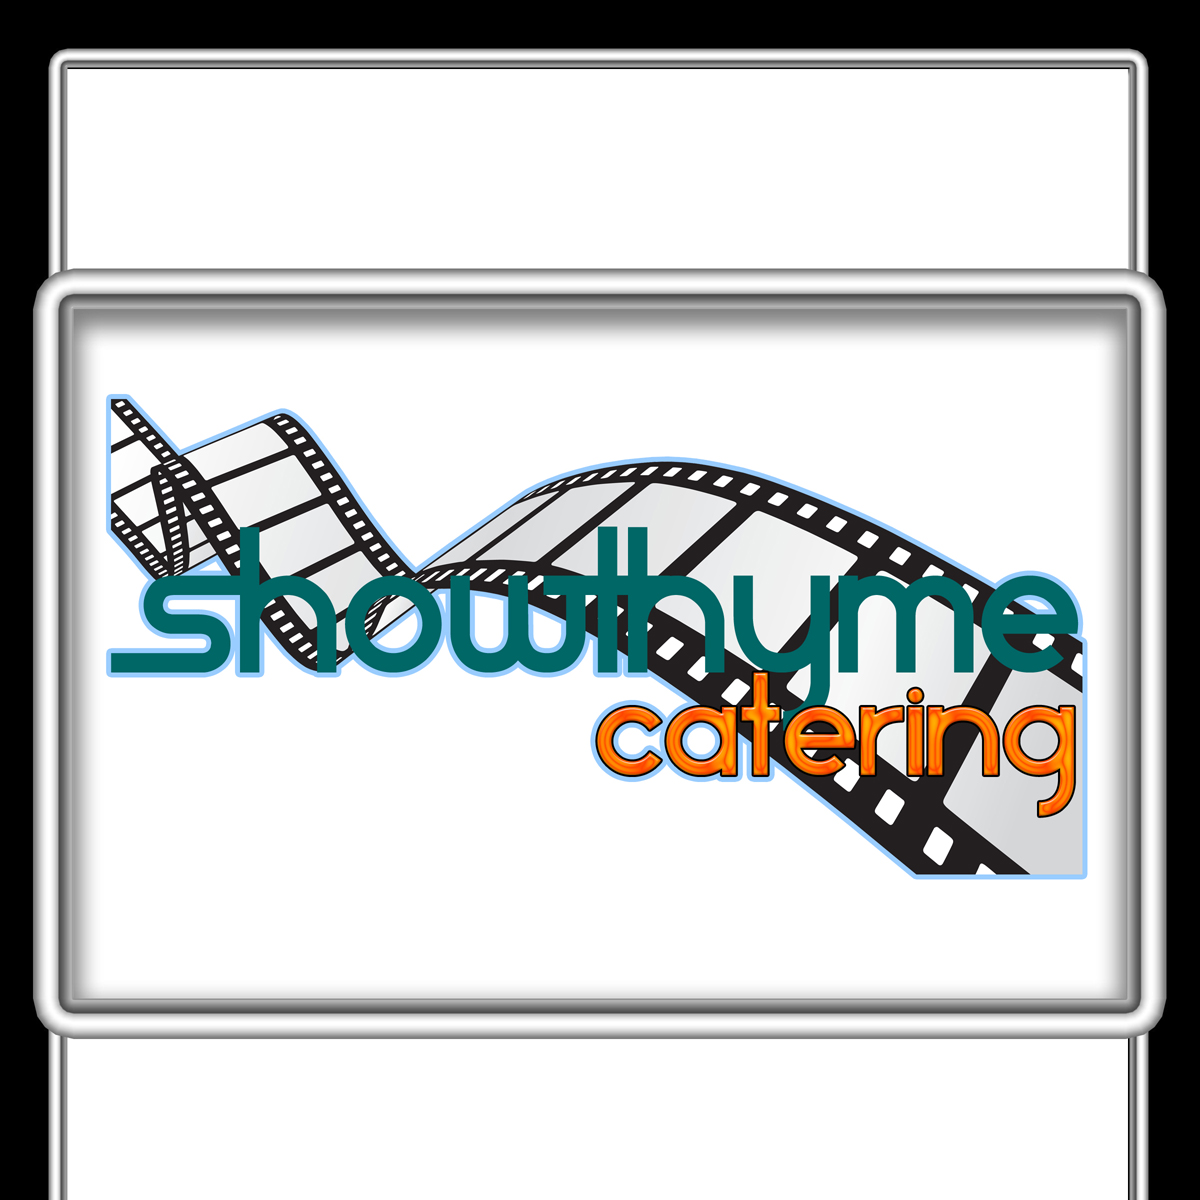 Logo Design by MITUCA ANDREI - Entry No. 7 in the Logo Design Contest Showthyme Catering Logo Design.